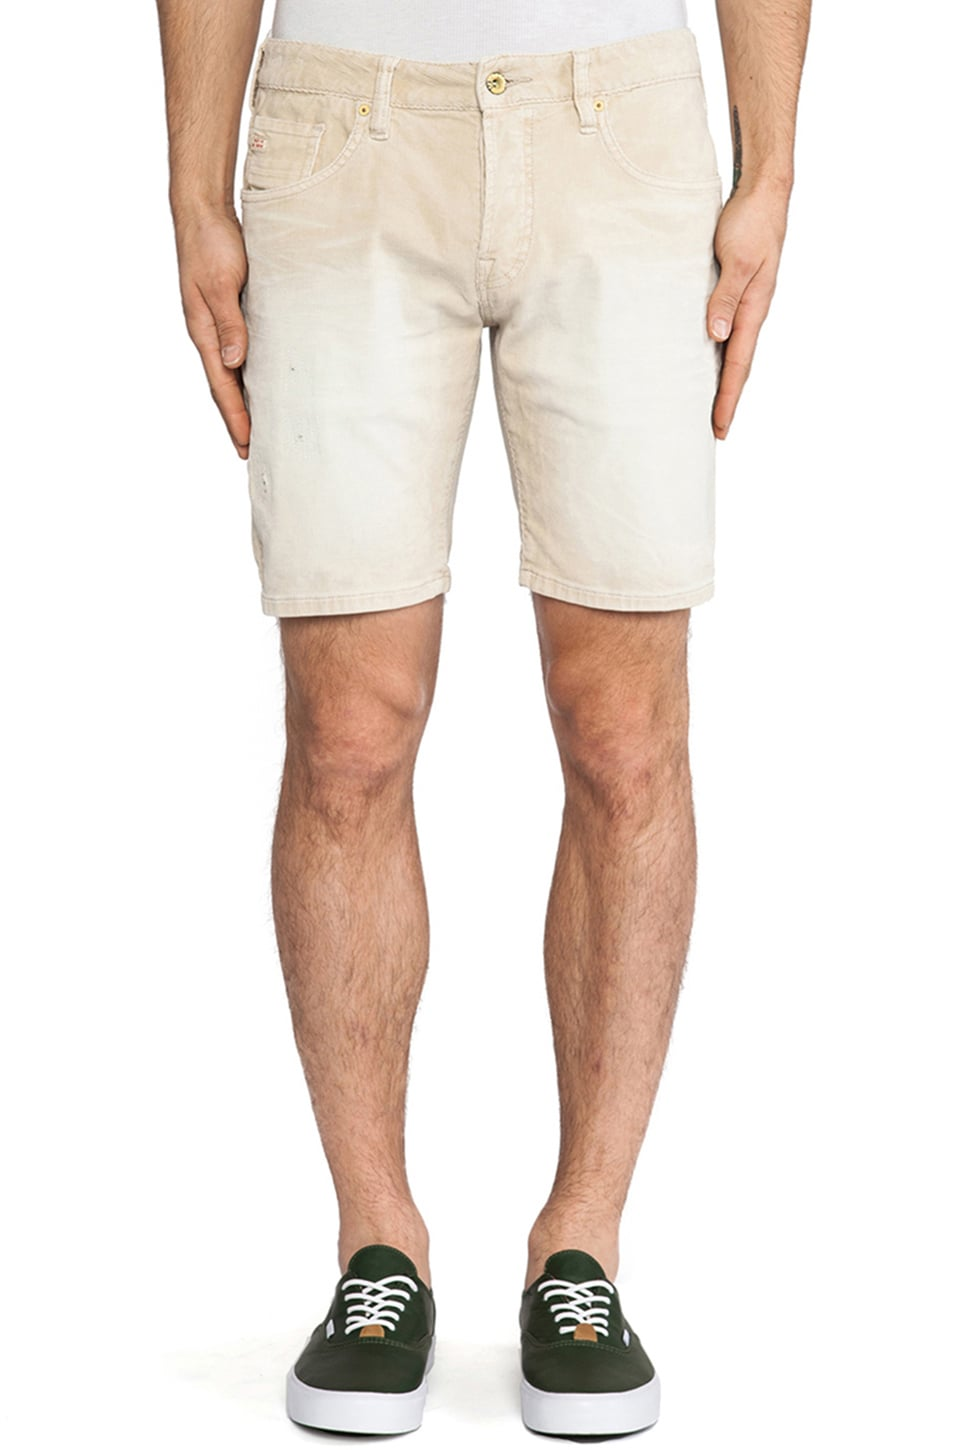 Scotch & Soda 5-Pocket Sprayed & Denim Repair Short in Sand